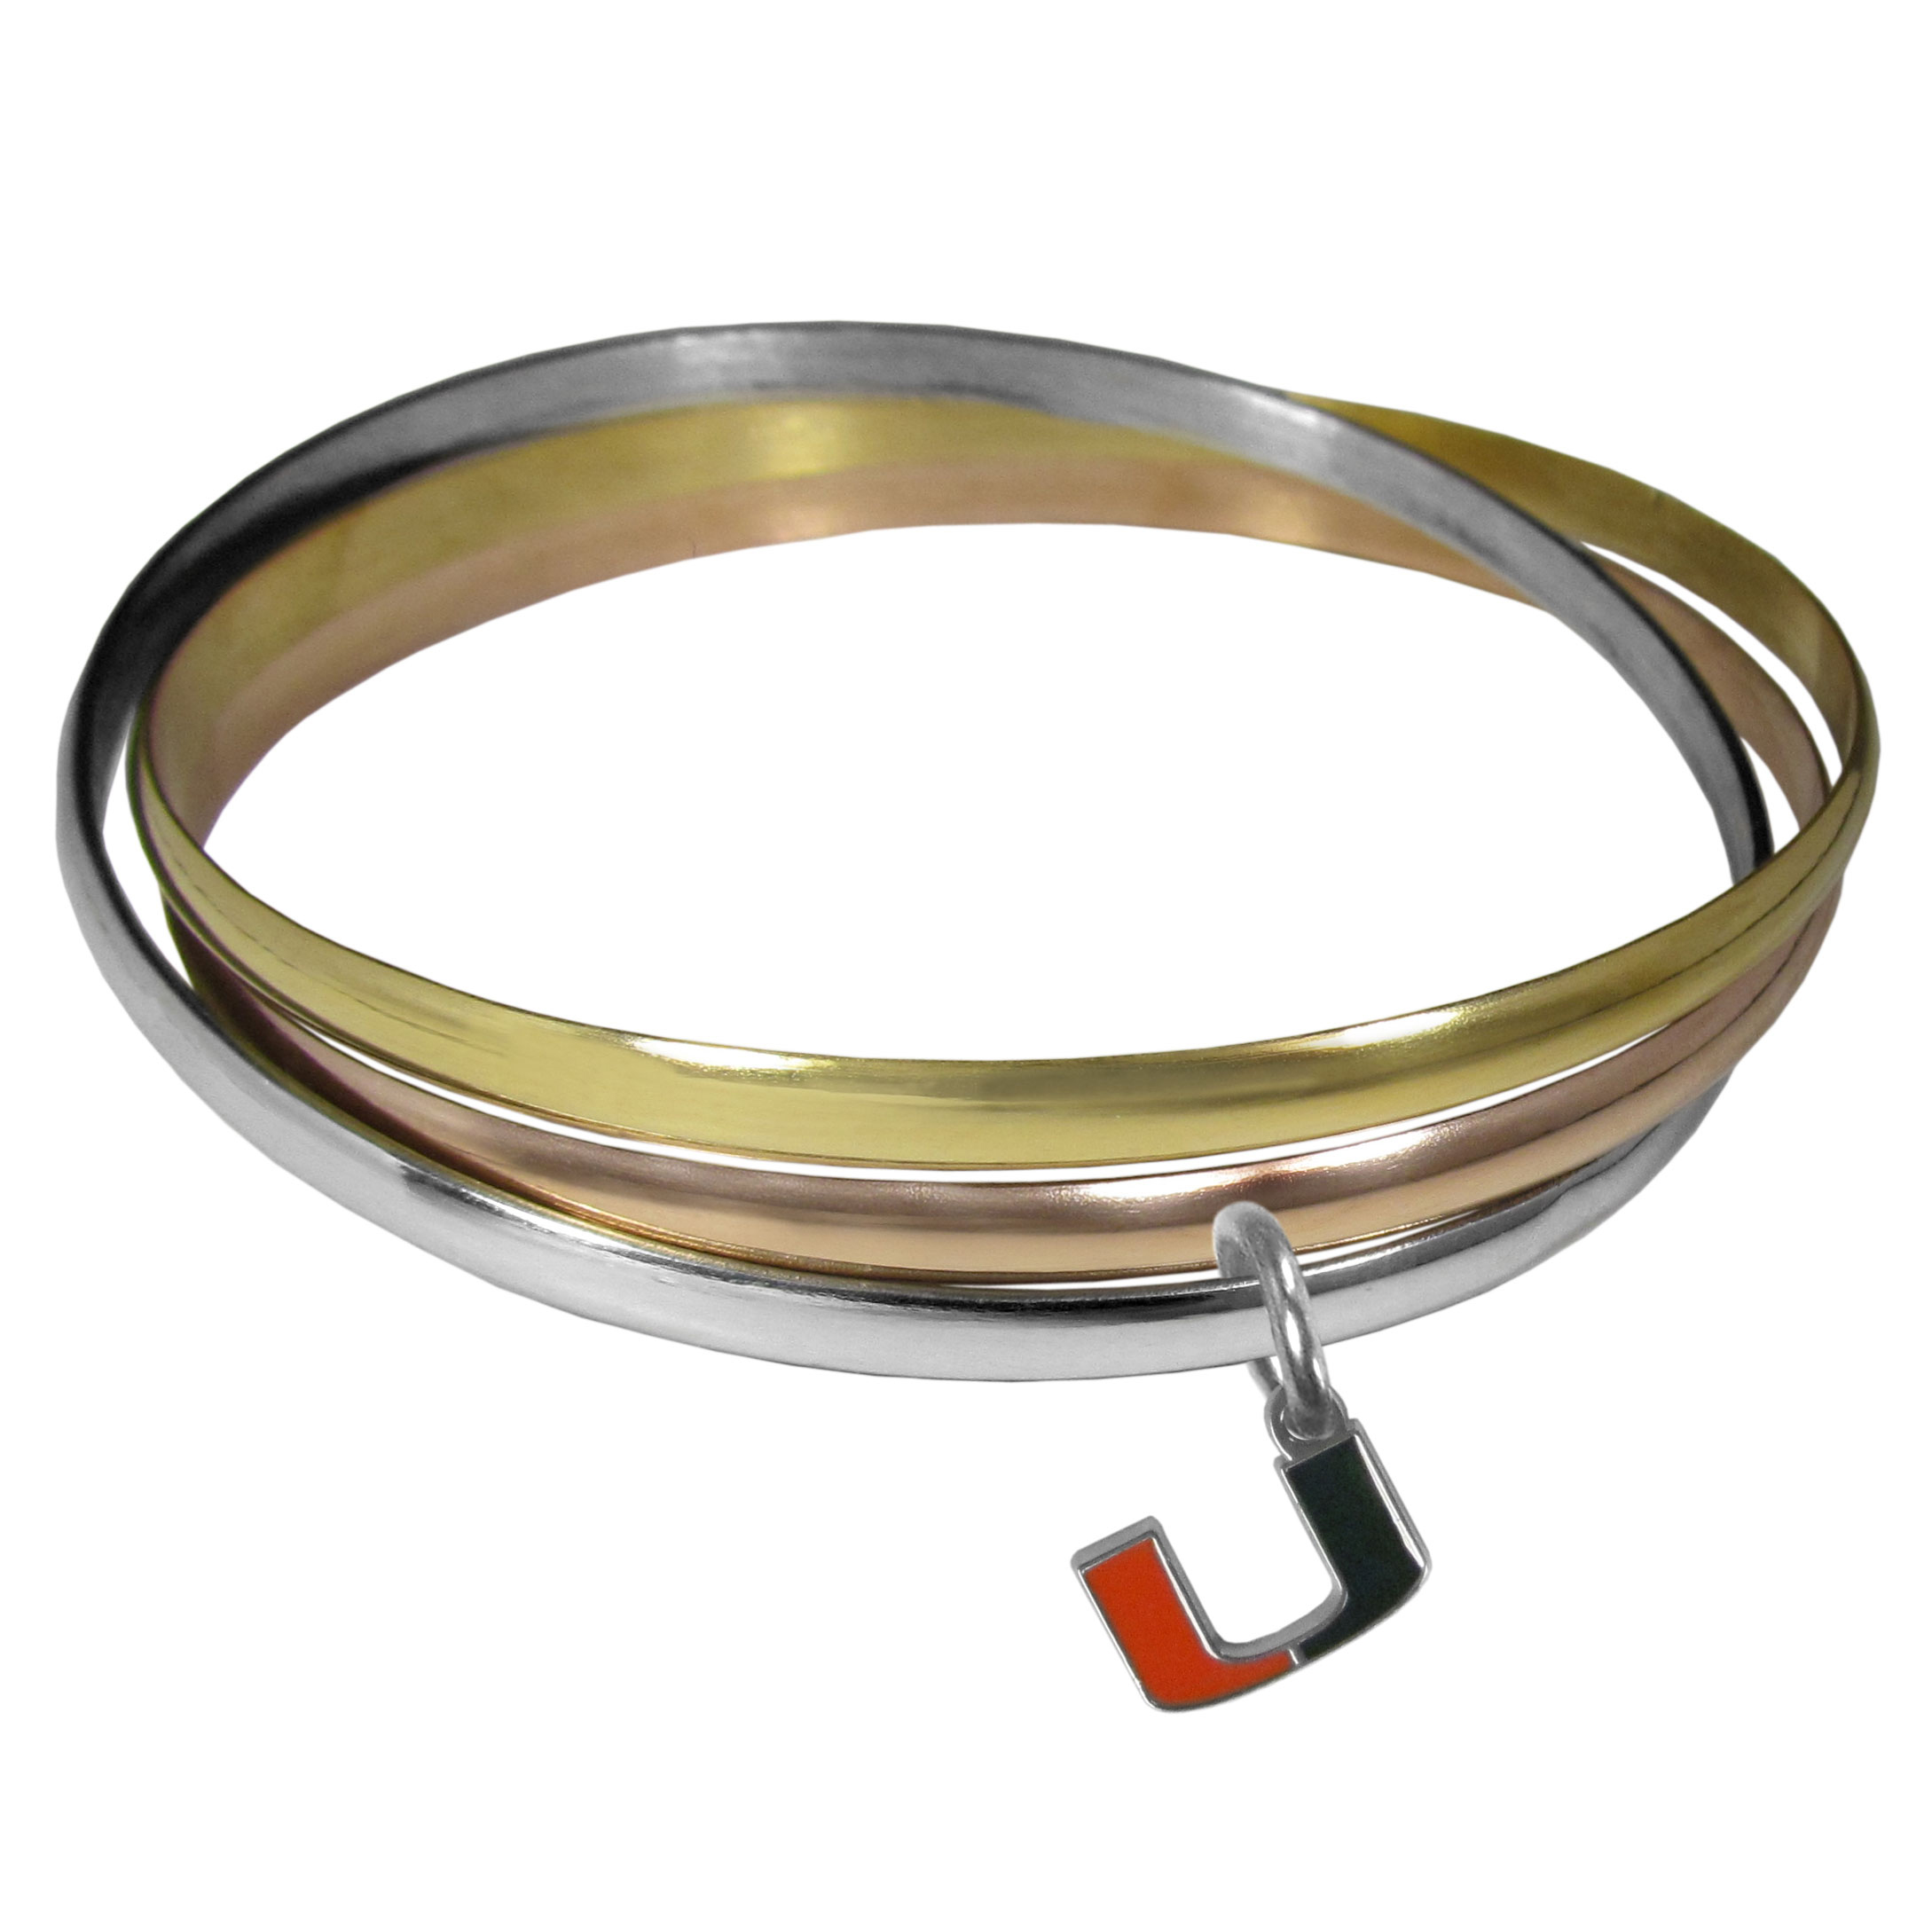 Miami Hurricanes Tri-color Bangle Bracelet - These beautiful bangles come in a interlocking style and feature a fully cast Miami Hurricanes charm with enameled team colors. The bracelet has a silver toned bangle, gold tone bangle and brass toned bangle.